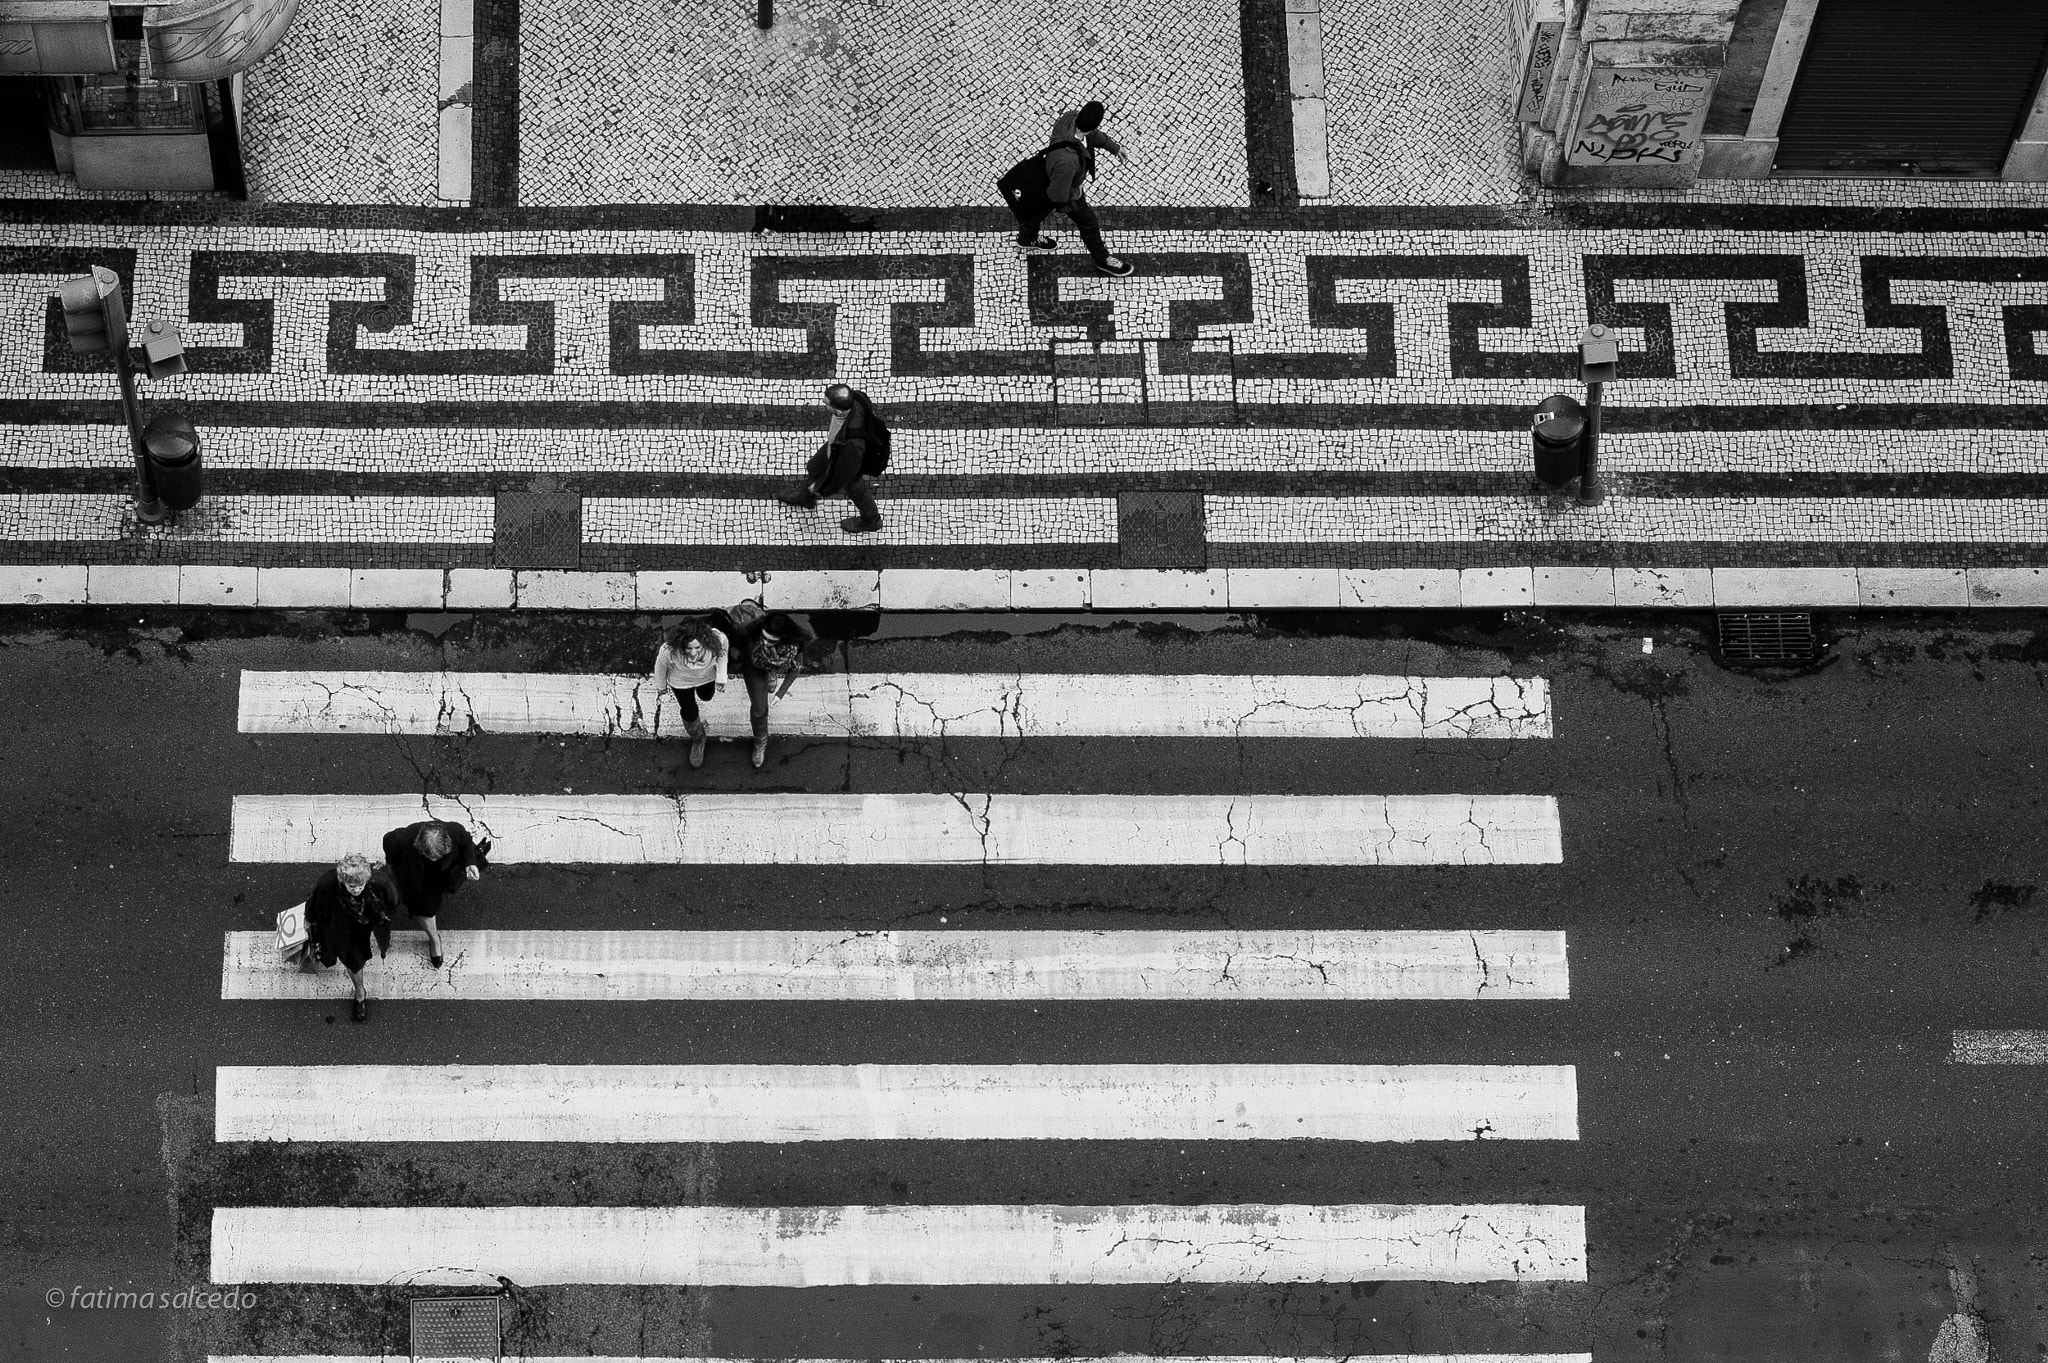 Photograph down there.... by fatima salcedo on 500px